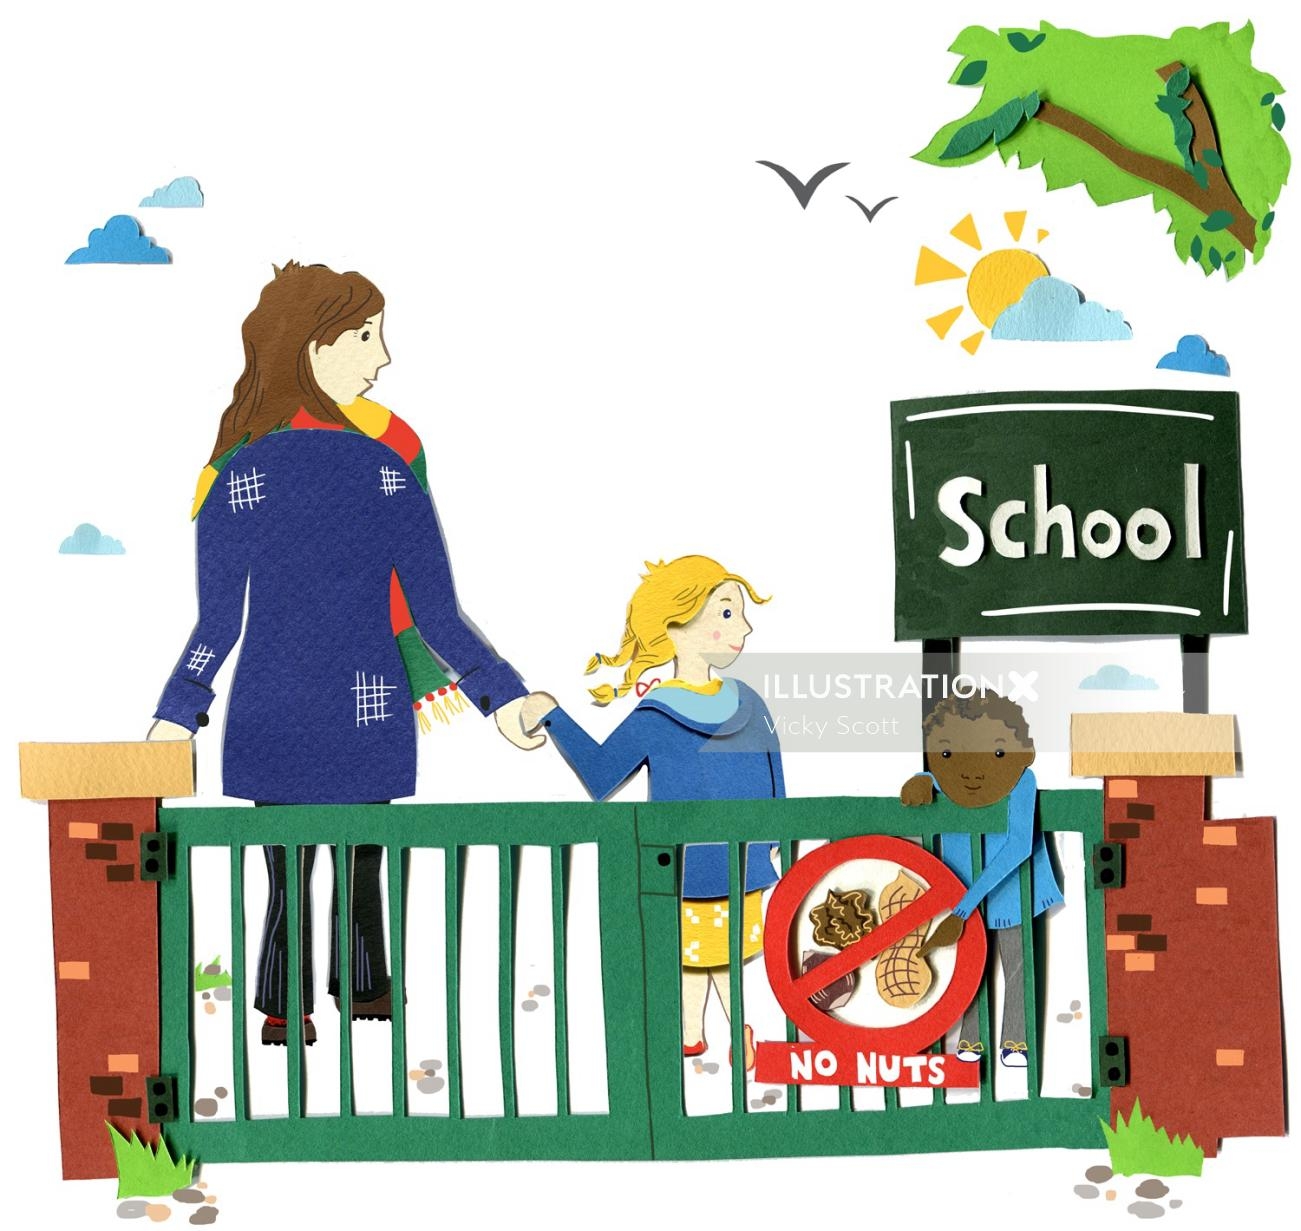 Illustration showing a humorous nut free school!